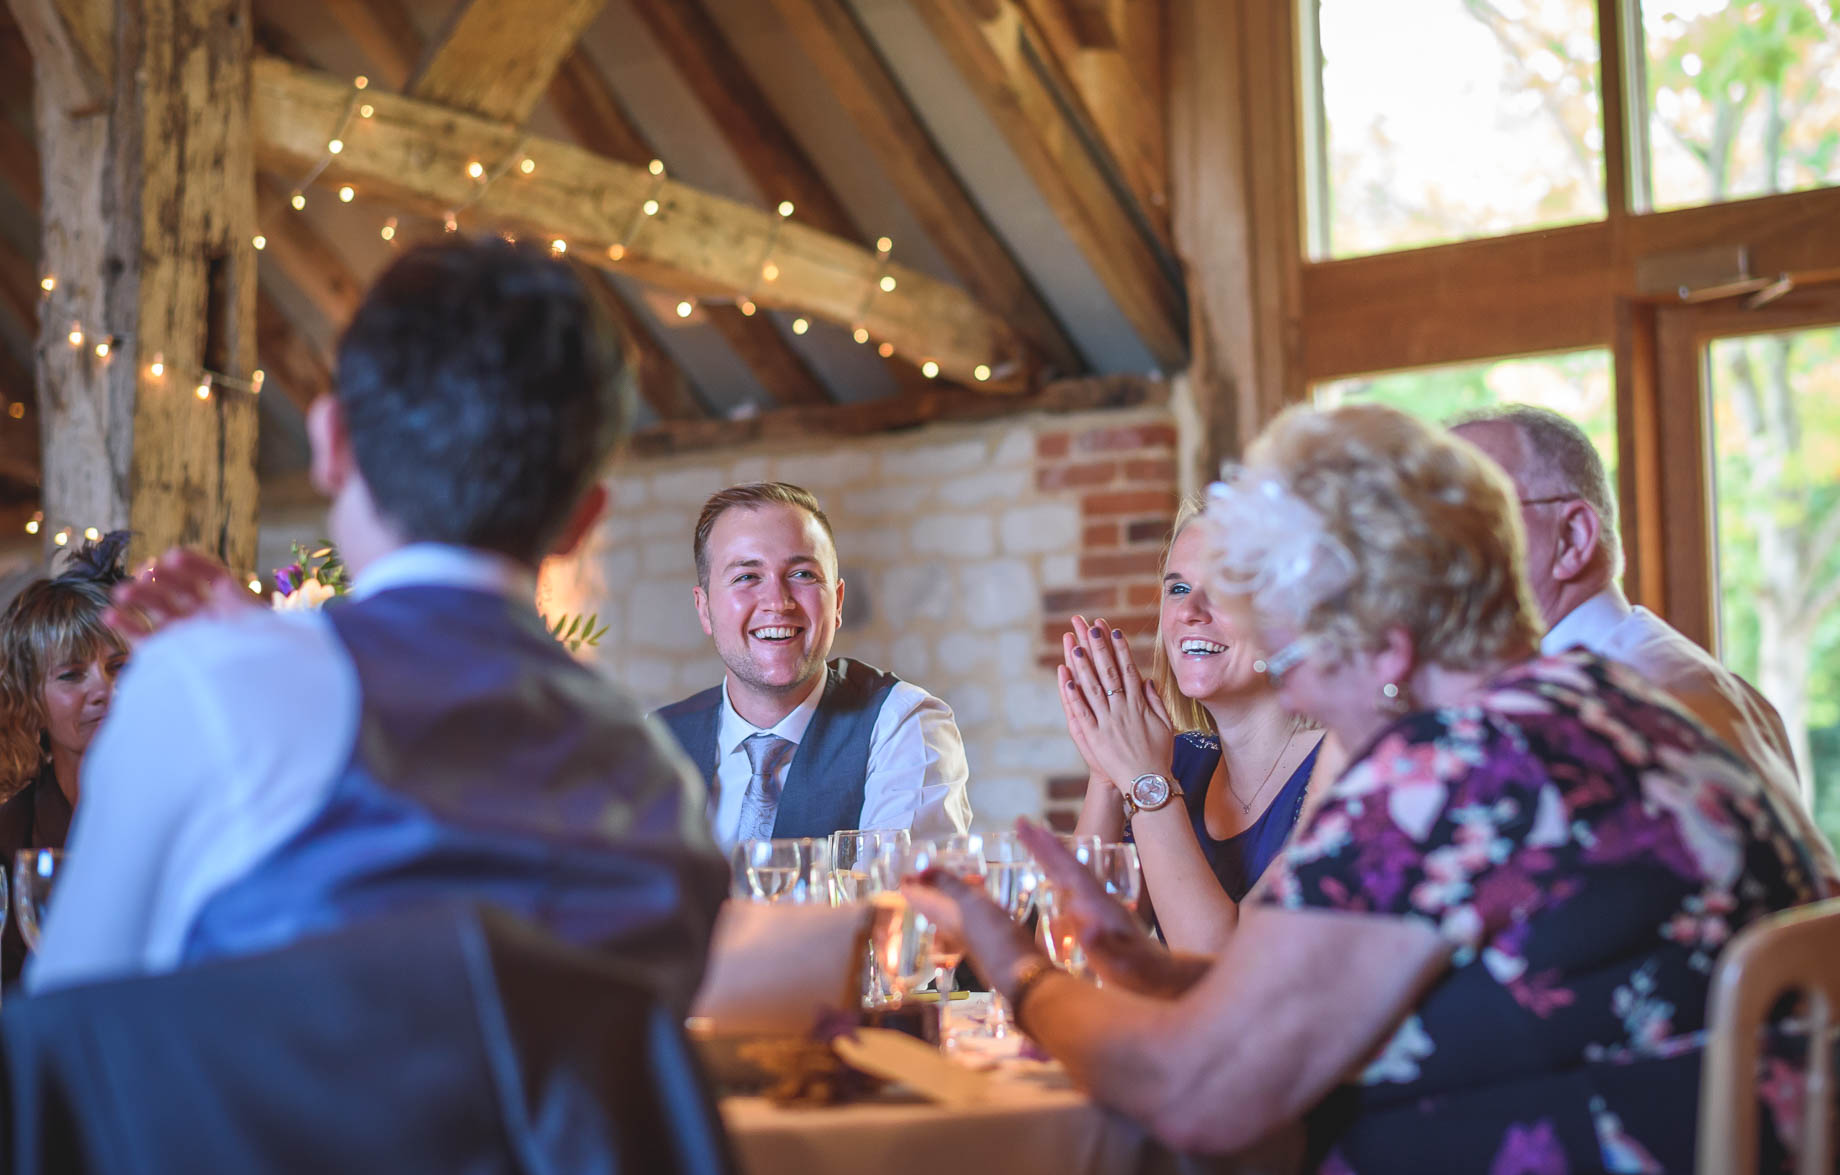 Bury Court Barn wedding photography - Guy Collier - Kirsty and Lewis (129 of 150)